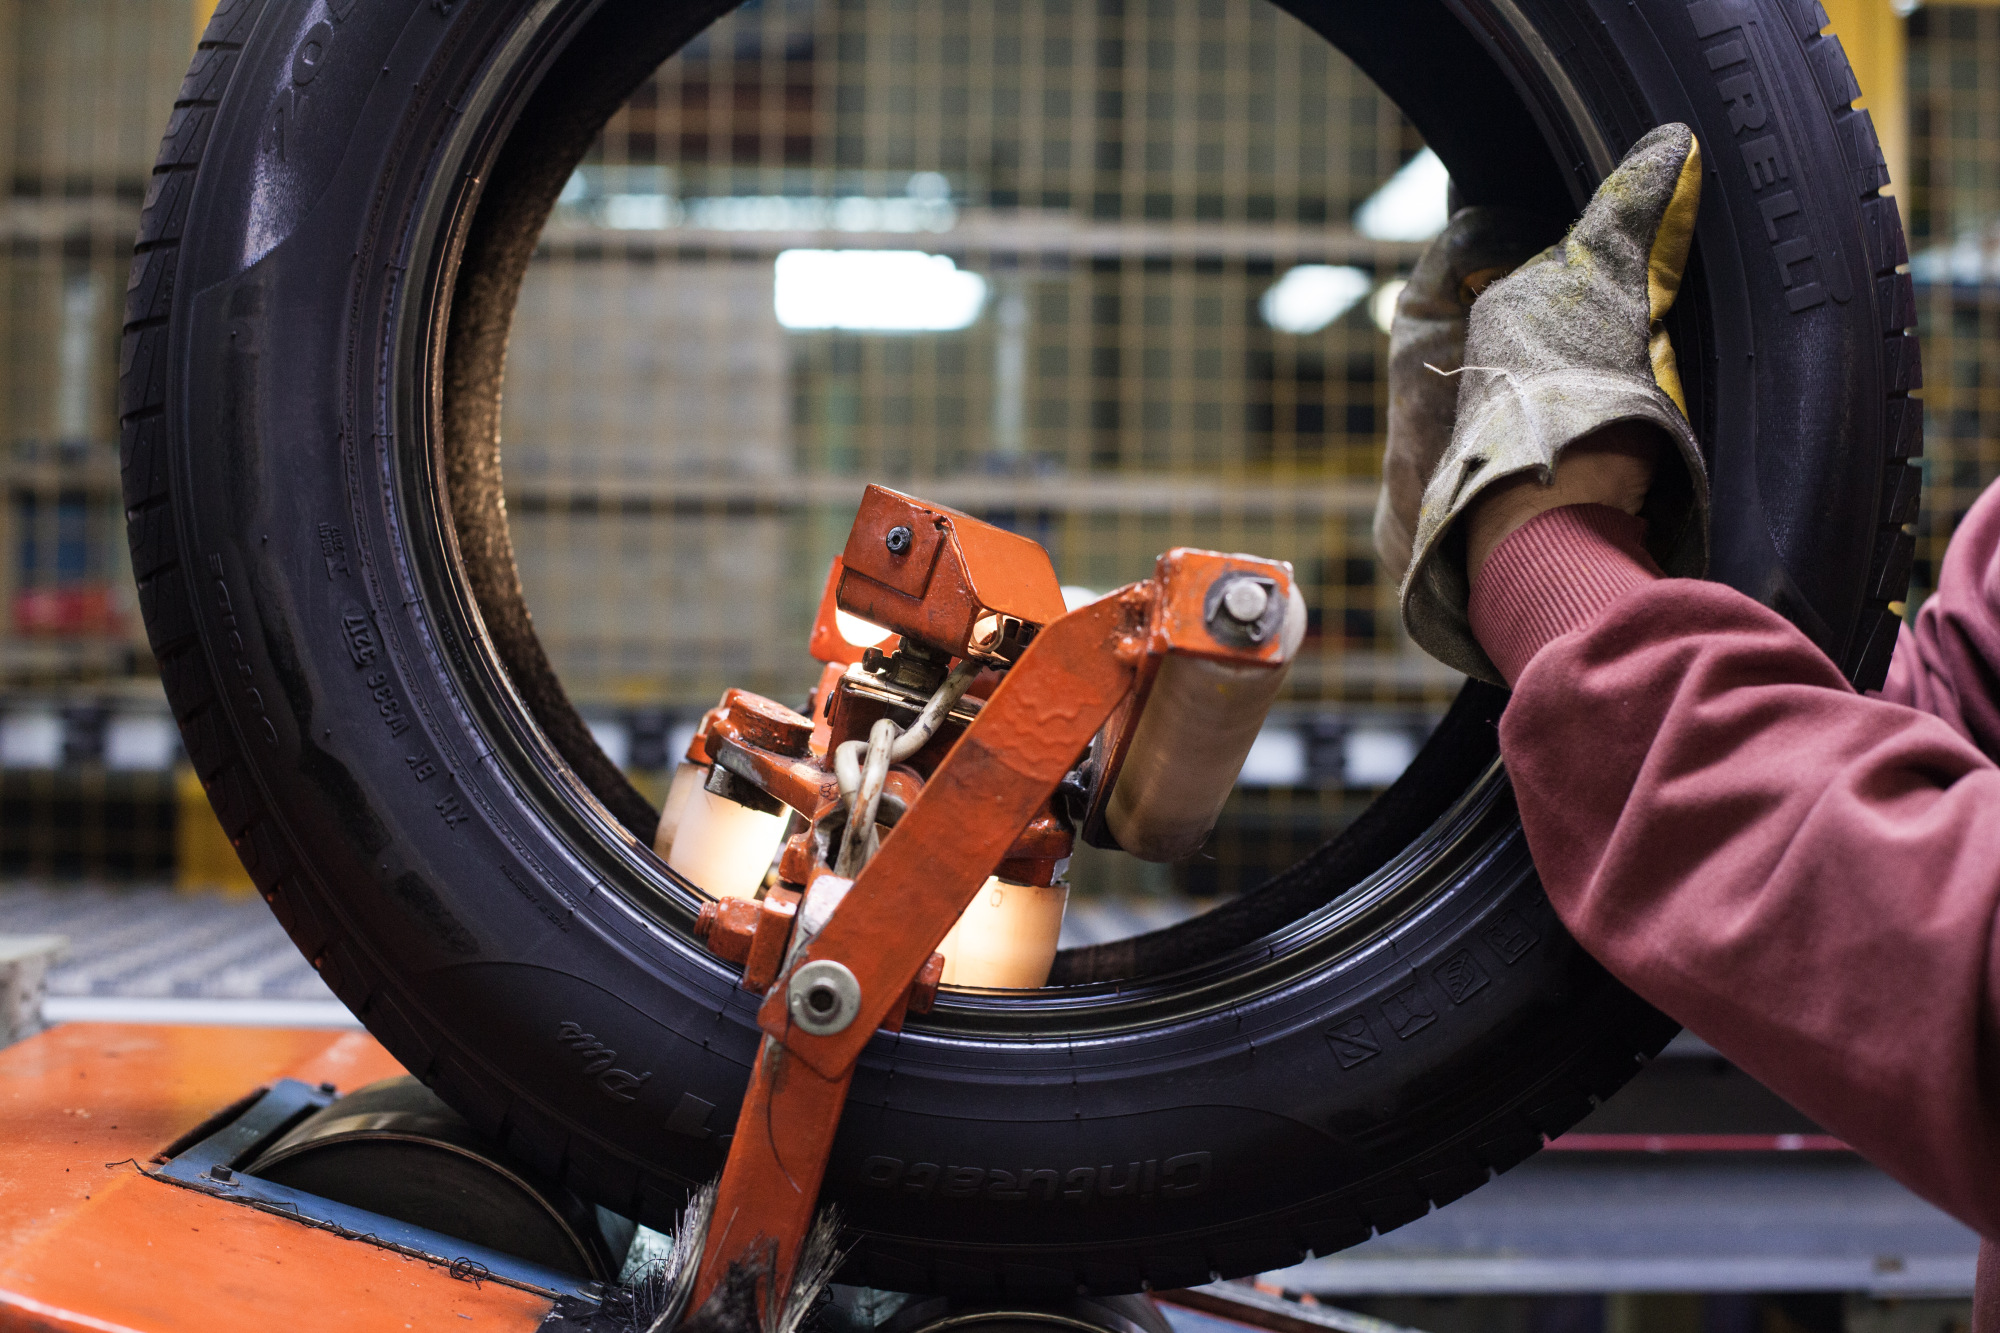 Pirelli generated 74% of sales from high-value lines last year.